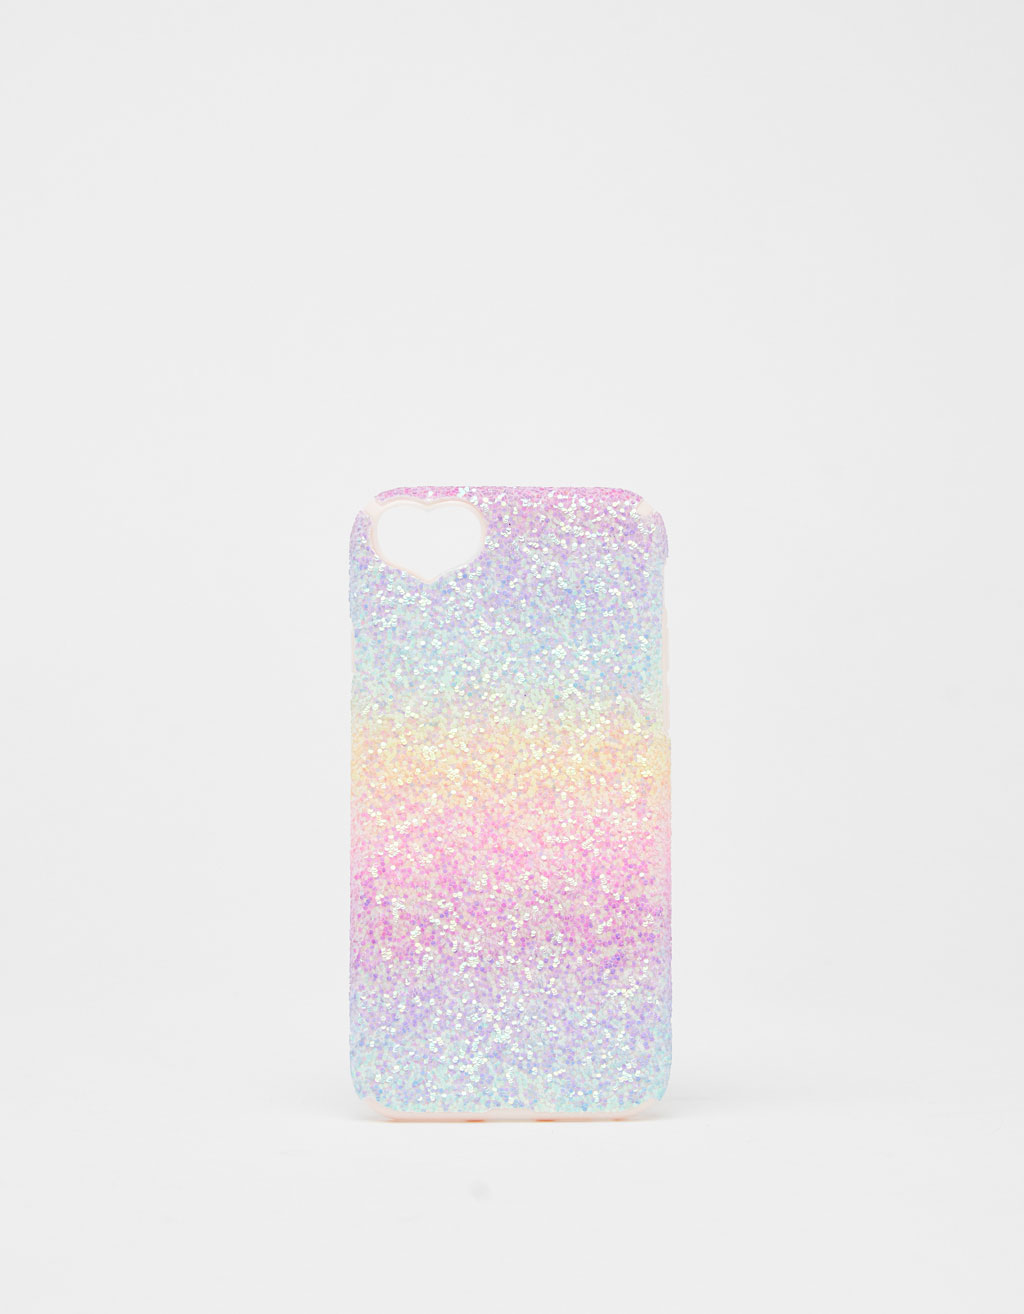 Shiny iPhone 6/6s/7/8 case with heart detail